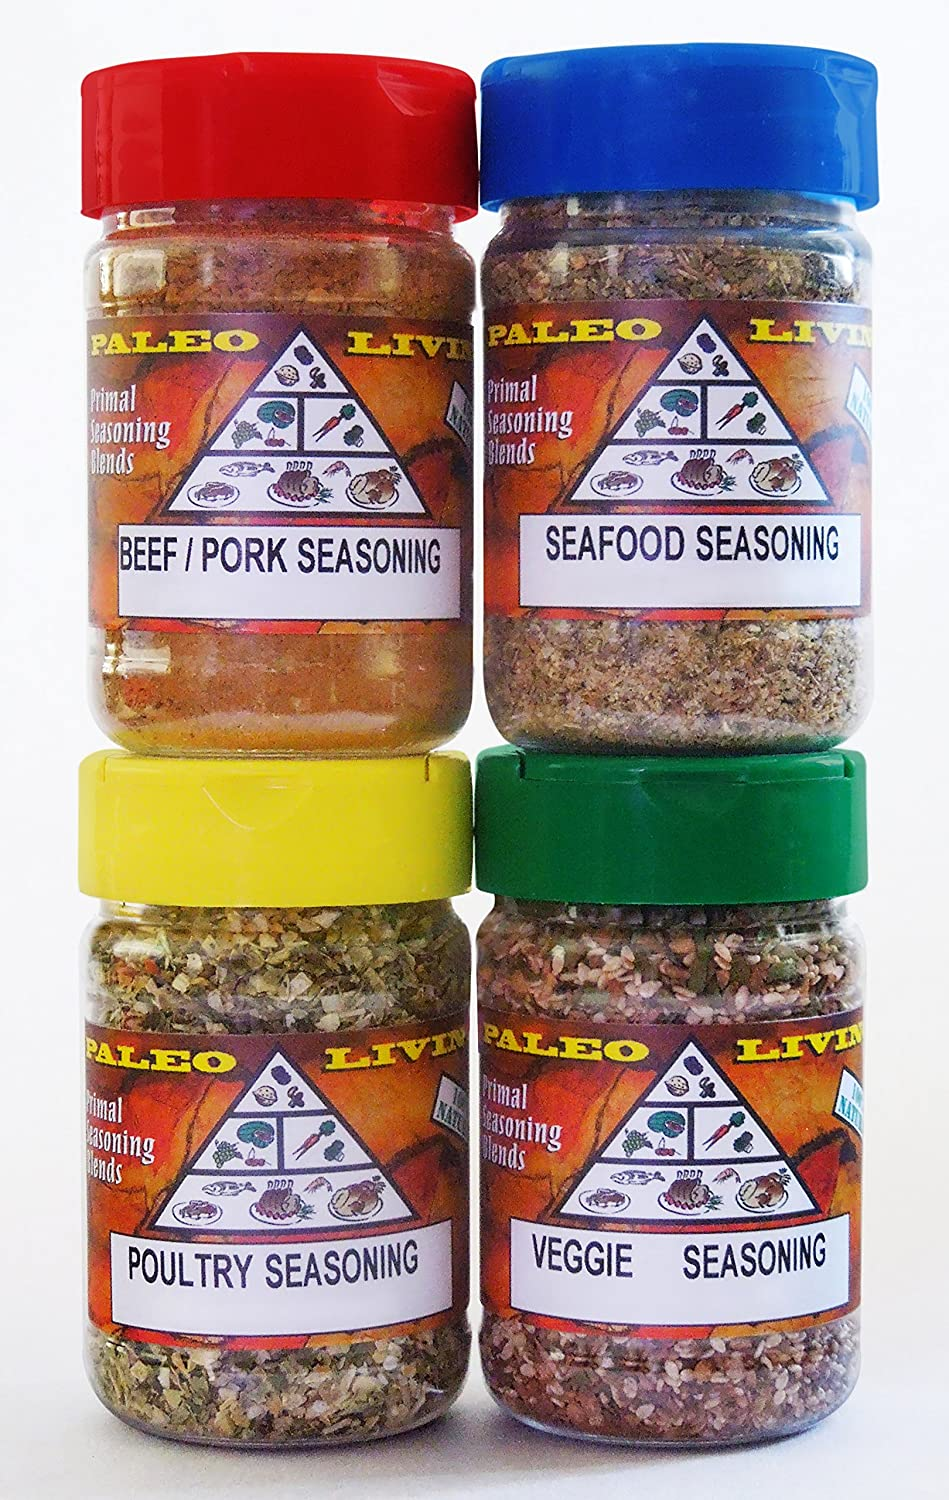 Paleo - Whole 30 - Crossfit - Spices by PALEO LIVING PRIMAL BLENDS Collection {LIMITED EDITION 4-Combo Pack Jars Seasonings Set} can be used for Cooking, Grilling, Baking, & with Cookbooks backed with 100% Customer Guarantee